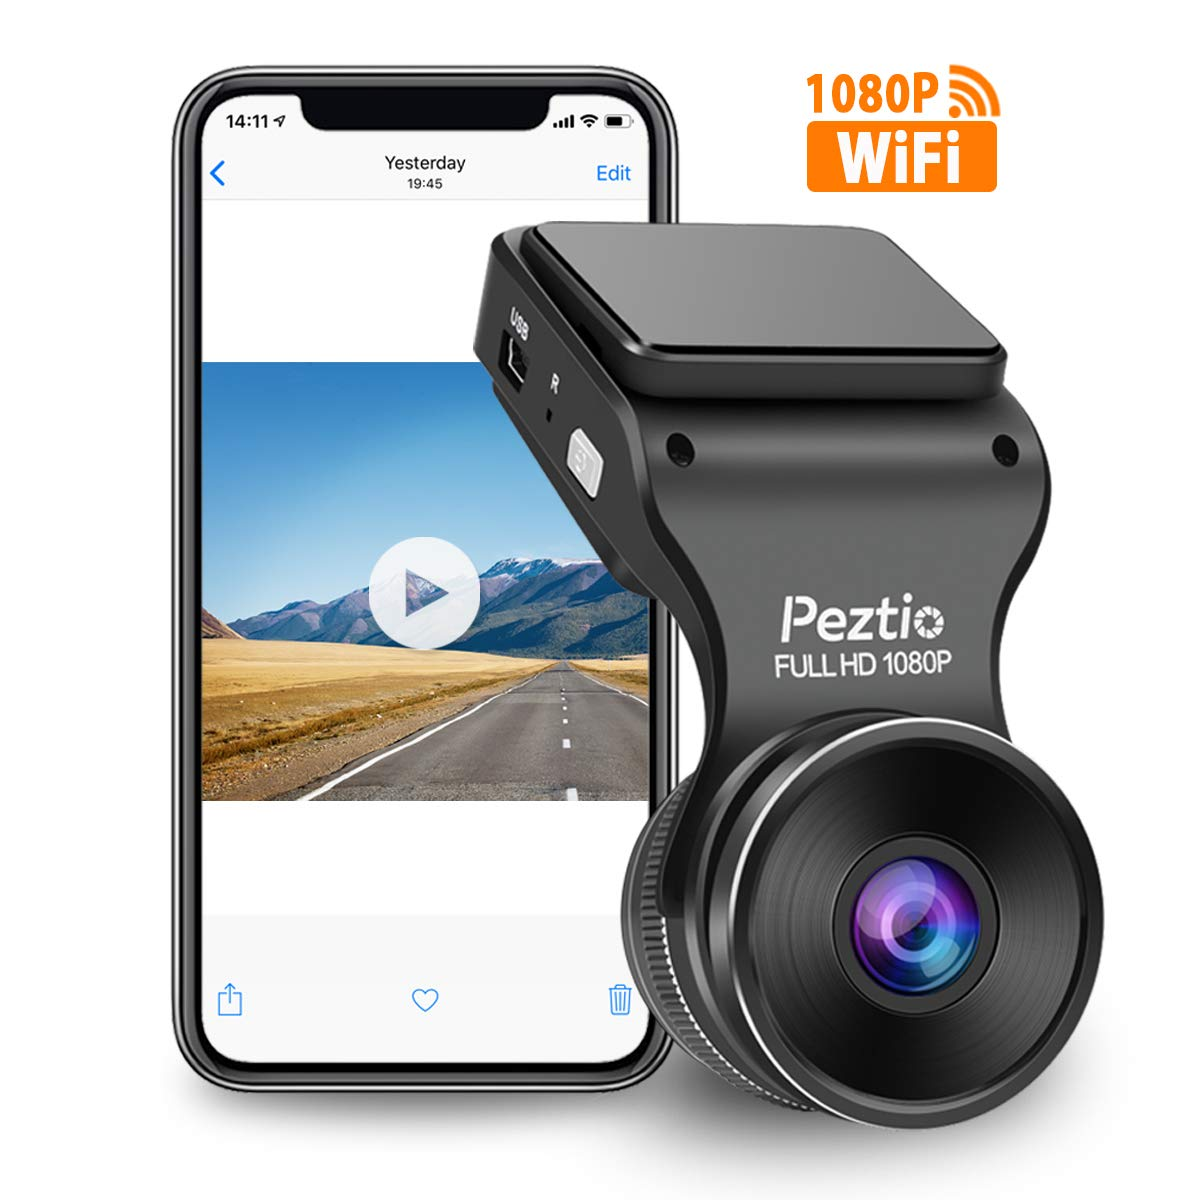 Peztio Dash Cam WiFi, FHD 1080P Dash Camera for Cars, Car Dash Camera Recorder, G-Sensor, 170 Wide Angle, Loop Recording, Parking Monitor, WDR, Night Vision, Motion Detection by Peztio